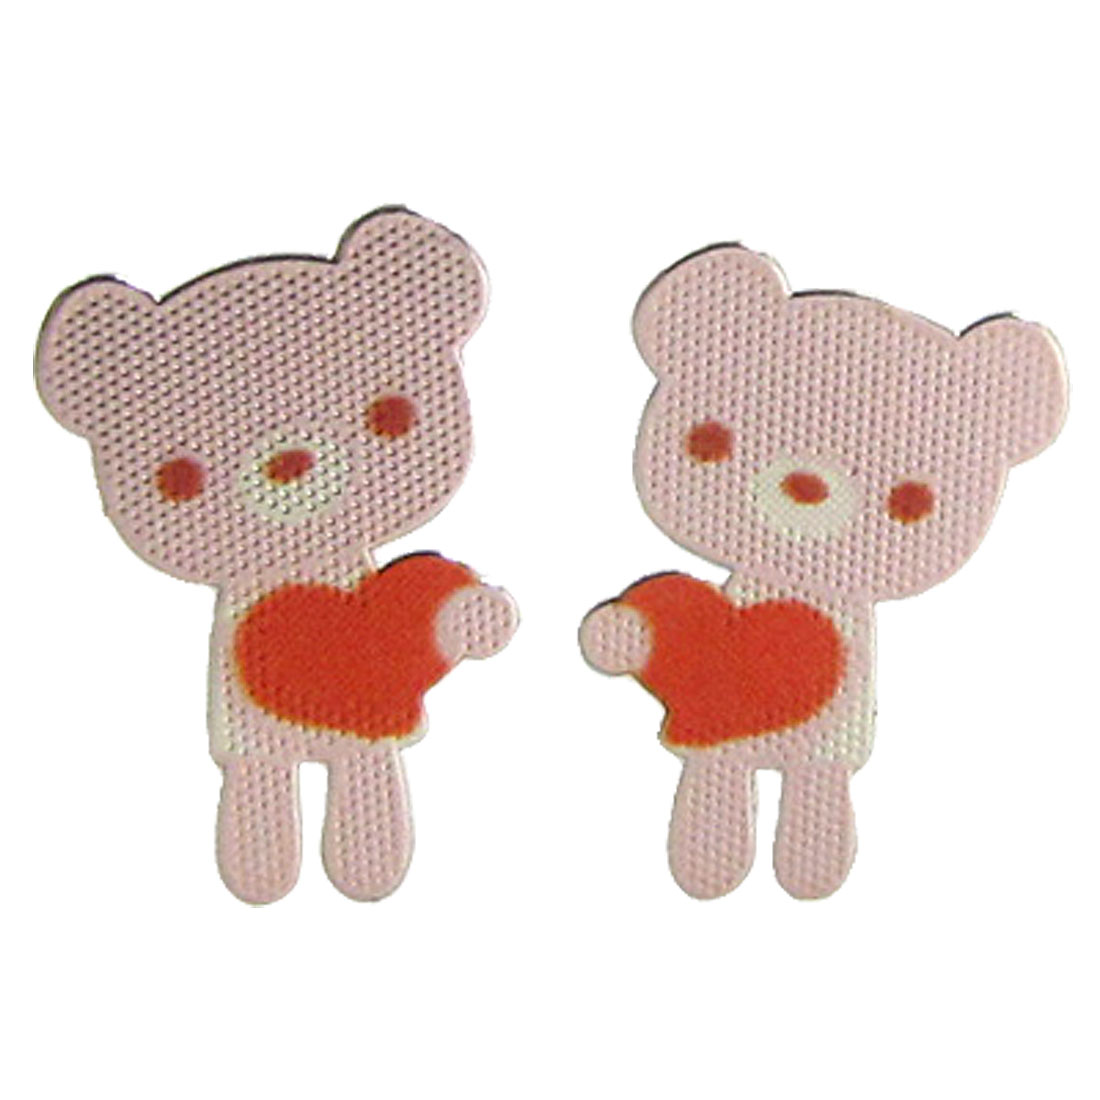 2 Pcs Love Bear Design Sticker for Phone PC